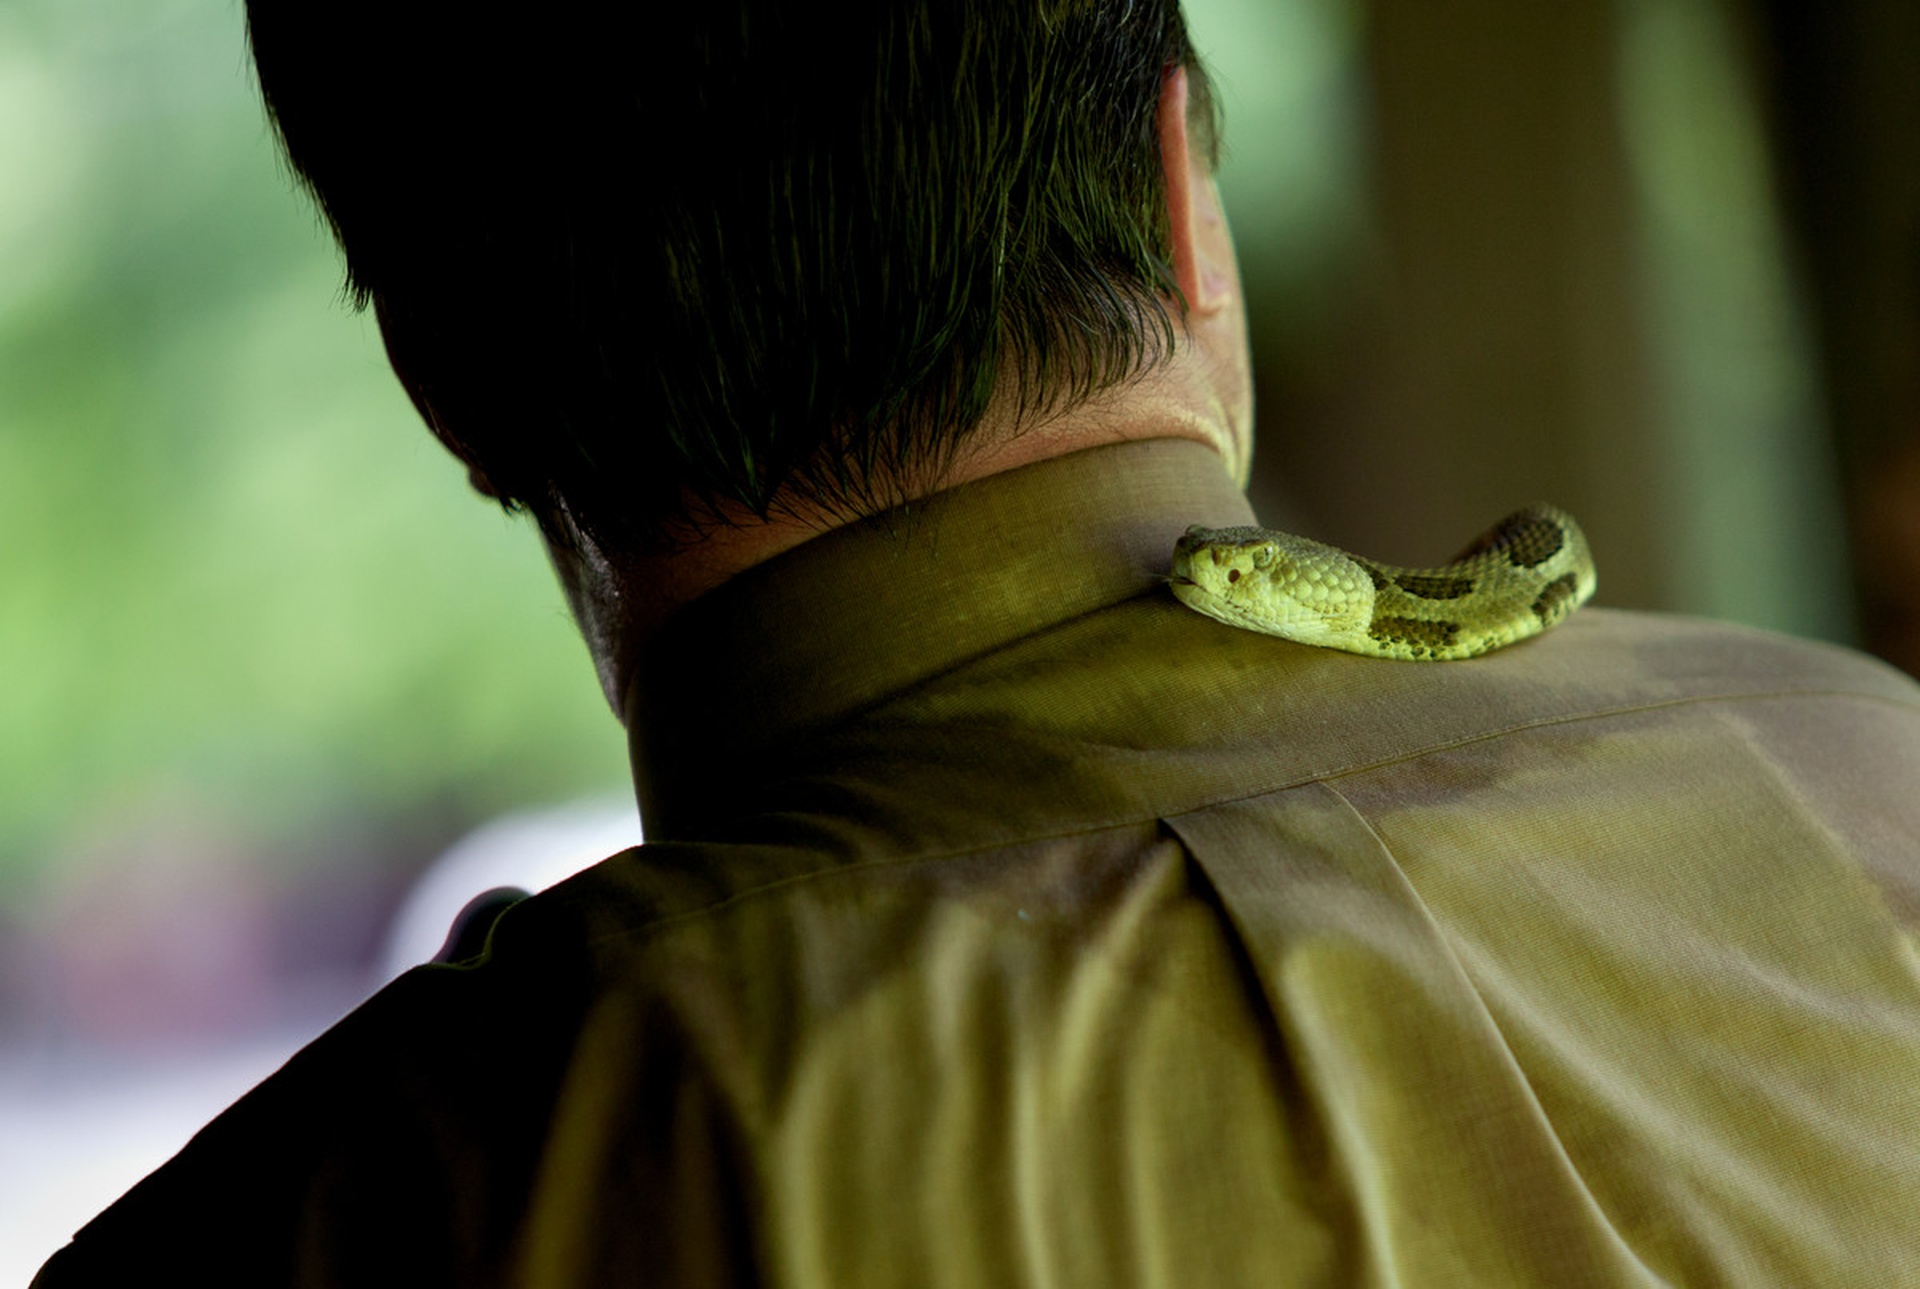 Pastor Mack Wolford's rattlesnake slithers around his neck during an outdoor service in May 2011. (Photo: Lauren Pond)